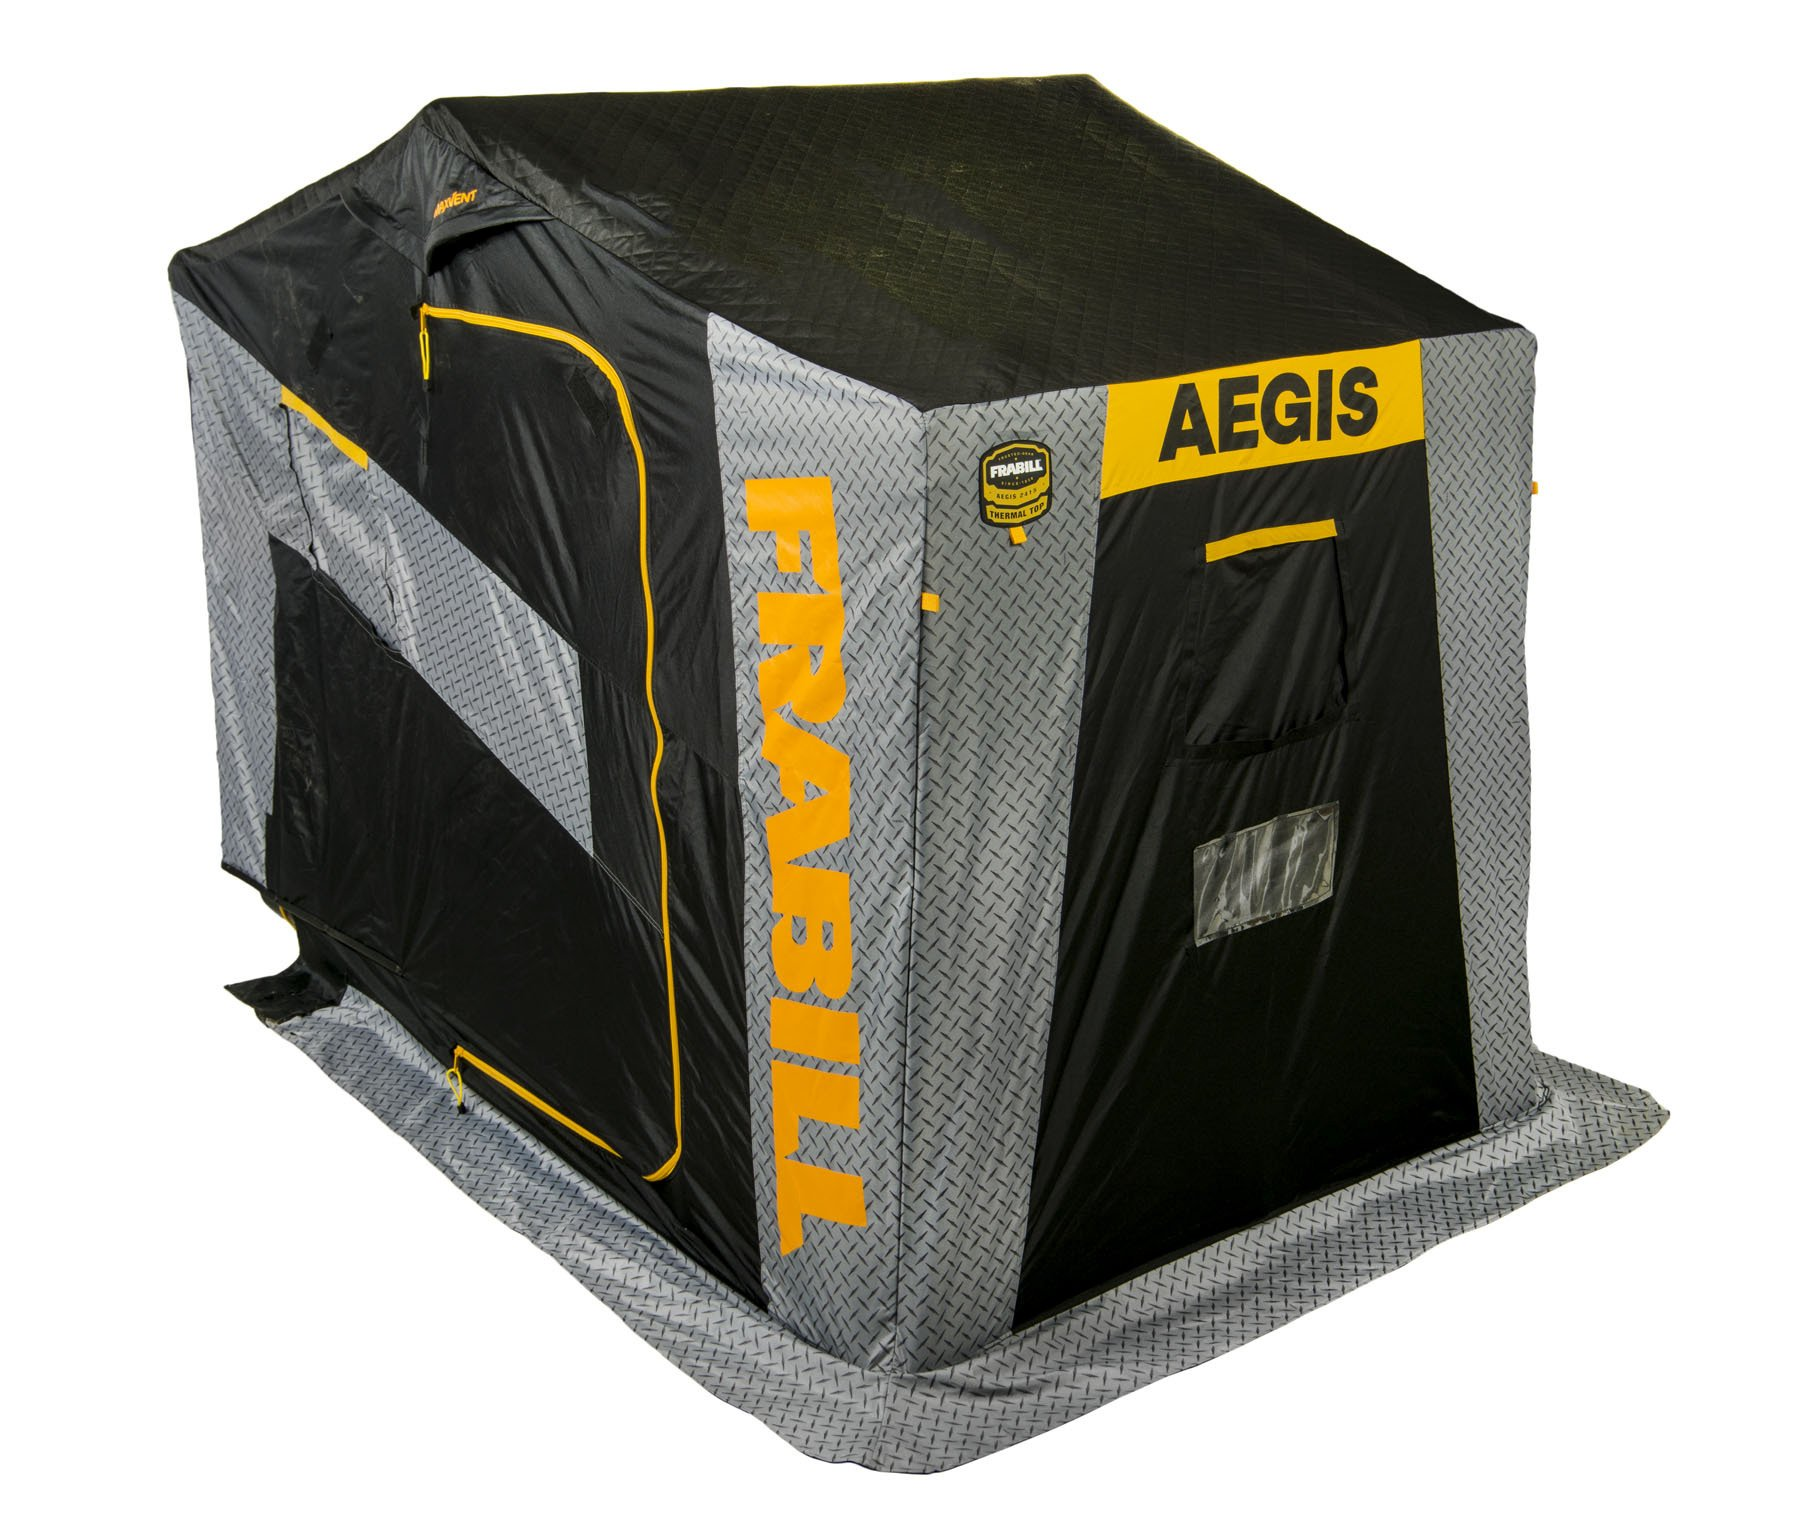 Frabill Aegis 2415 Top Insulated Flip-Over Shelter, Black/Gray by Frabill